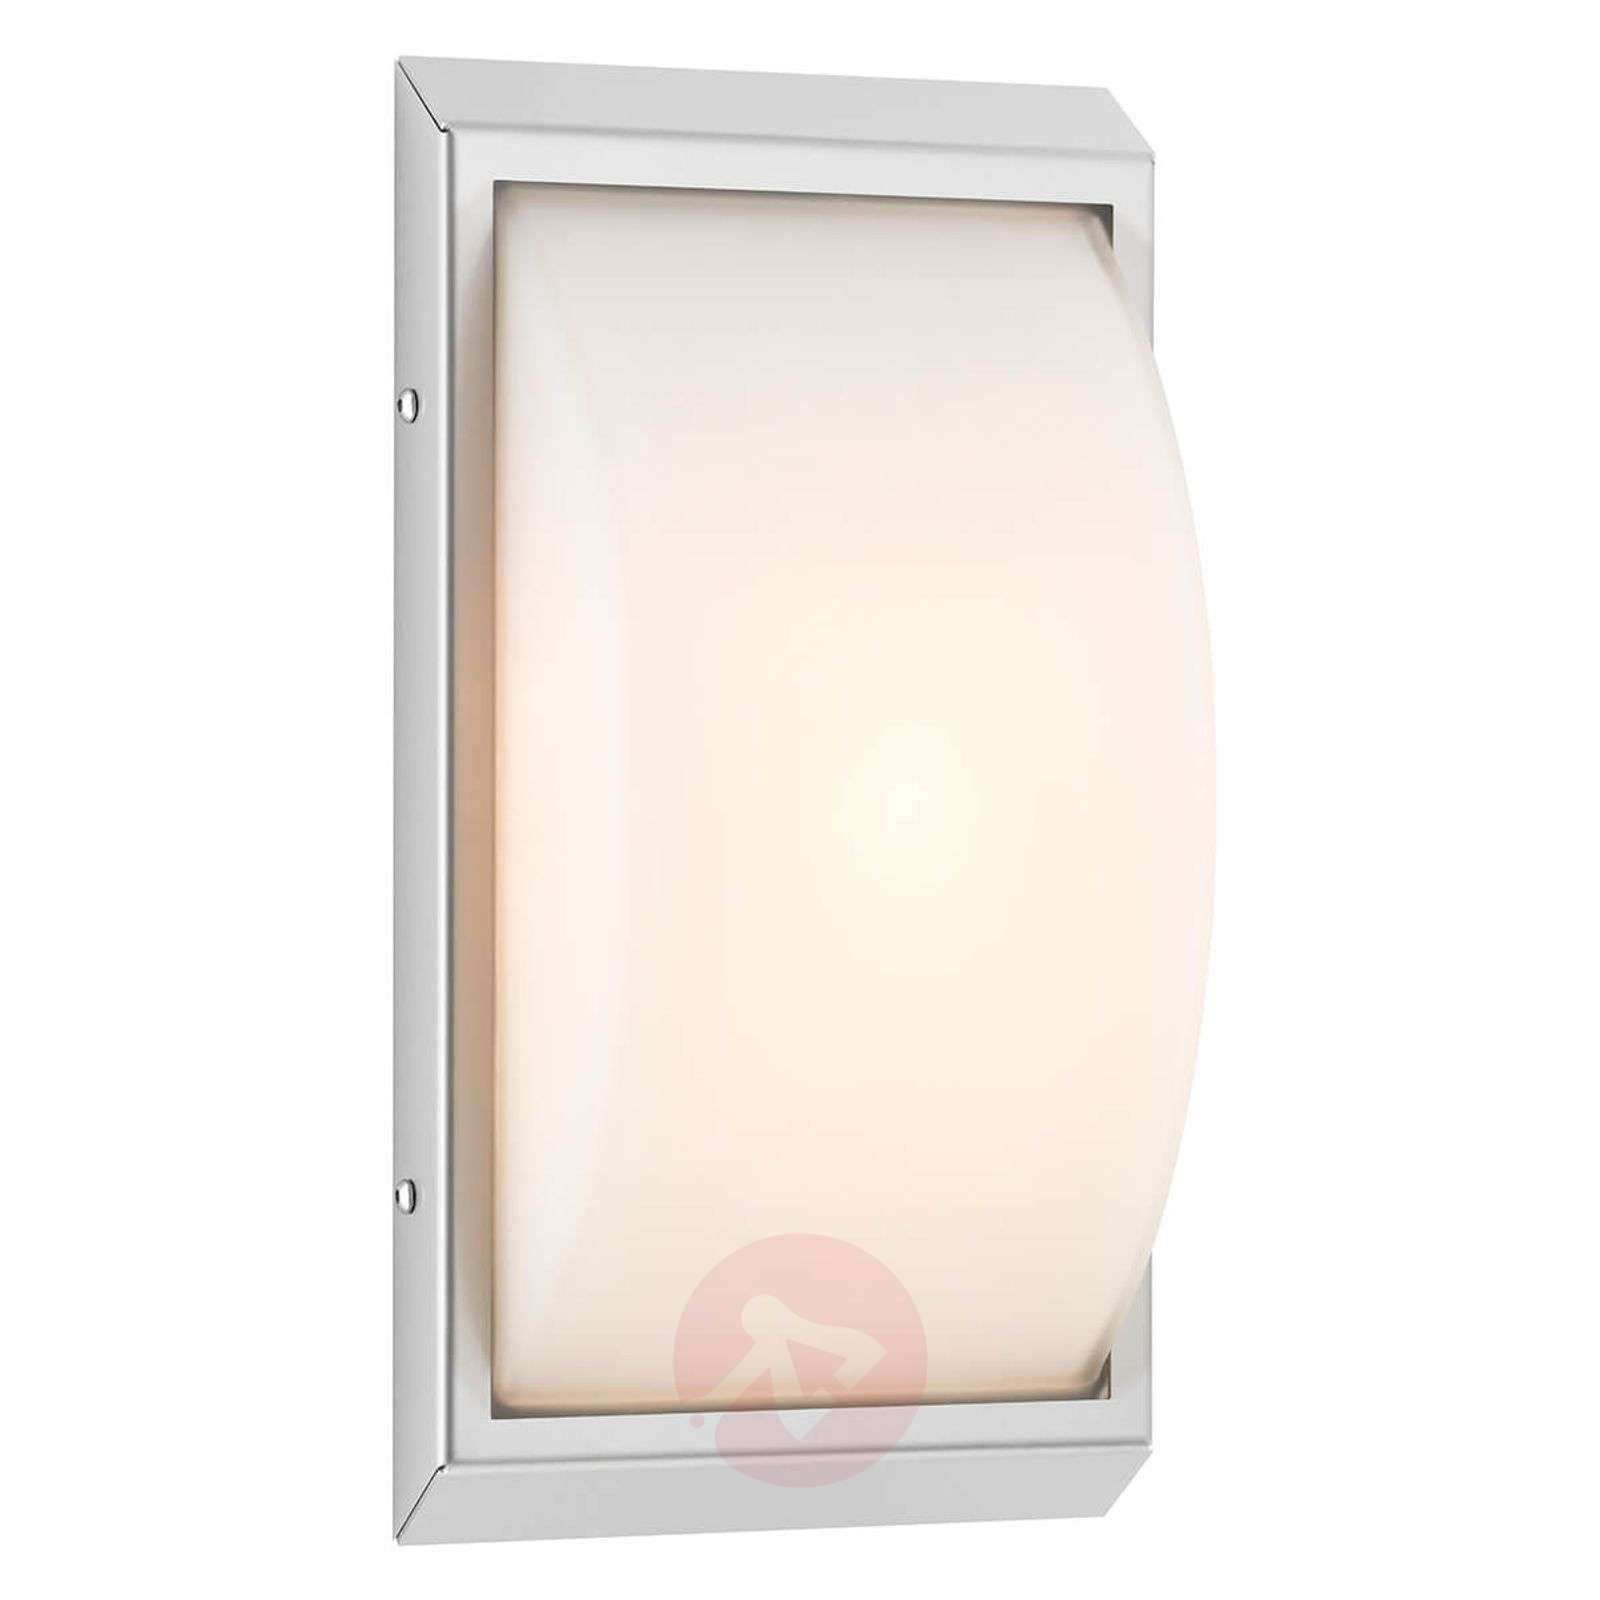 With motion sensor outdoor wall lamp Malte-6068117-01